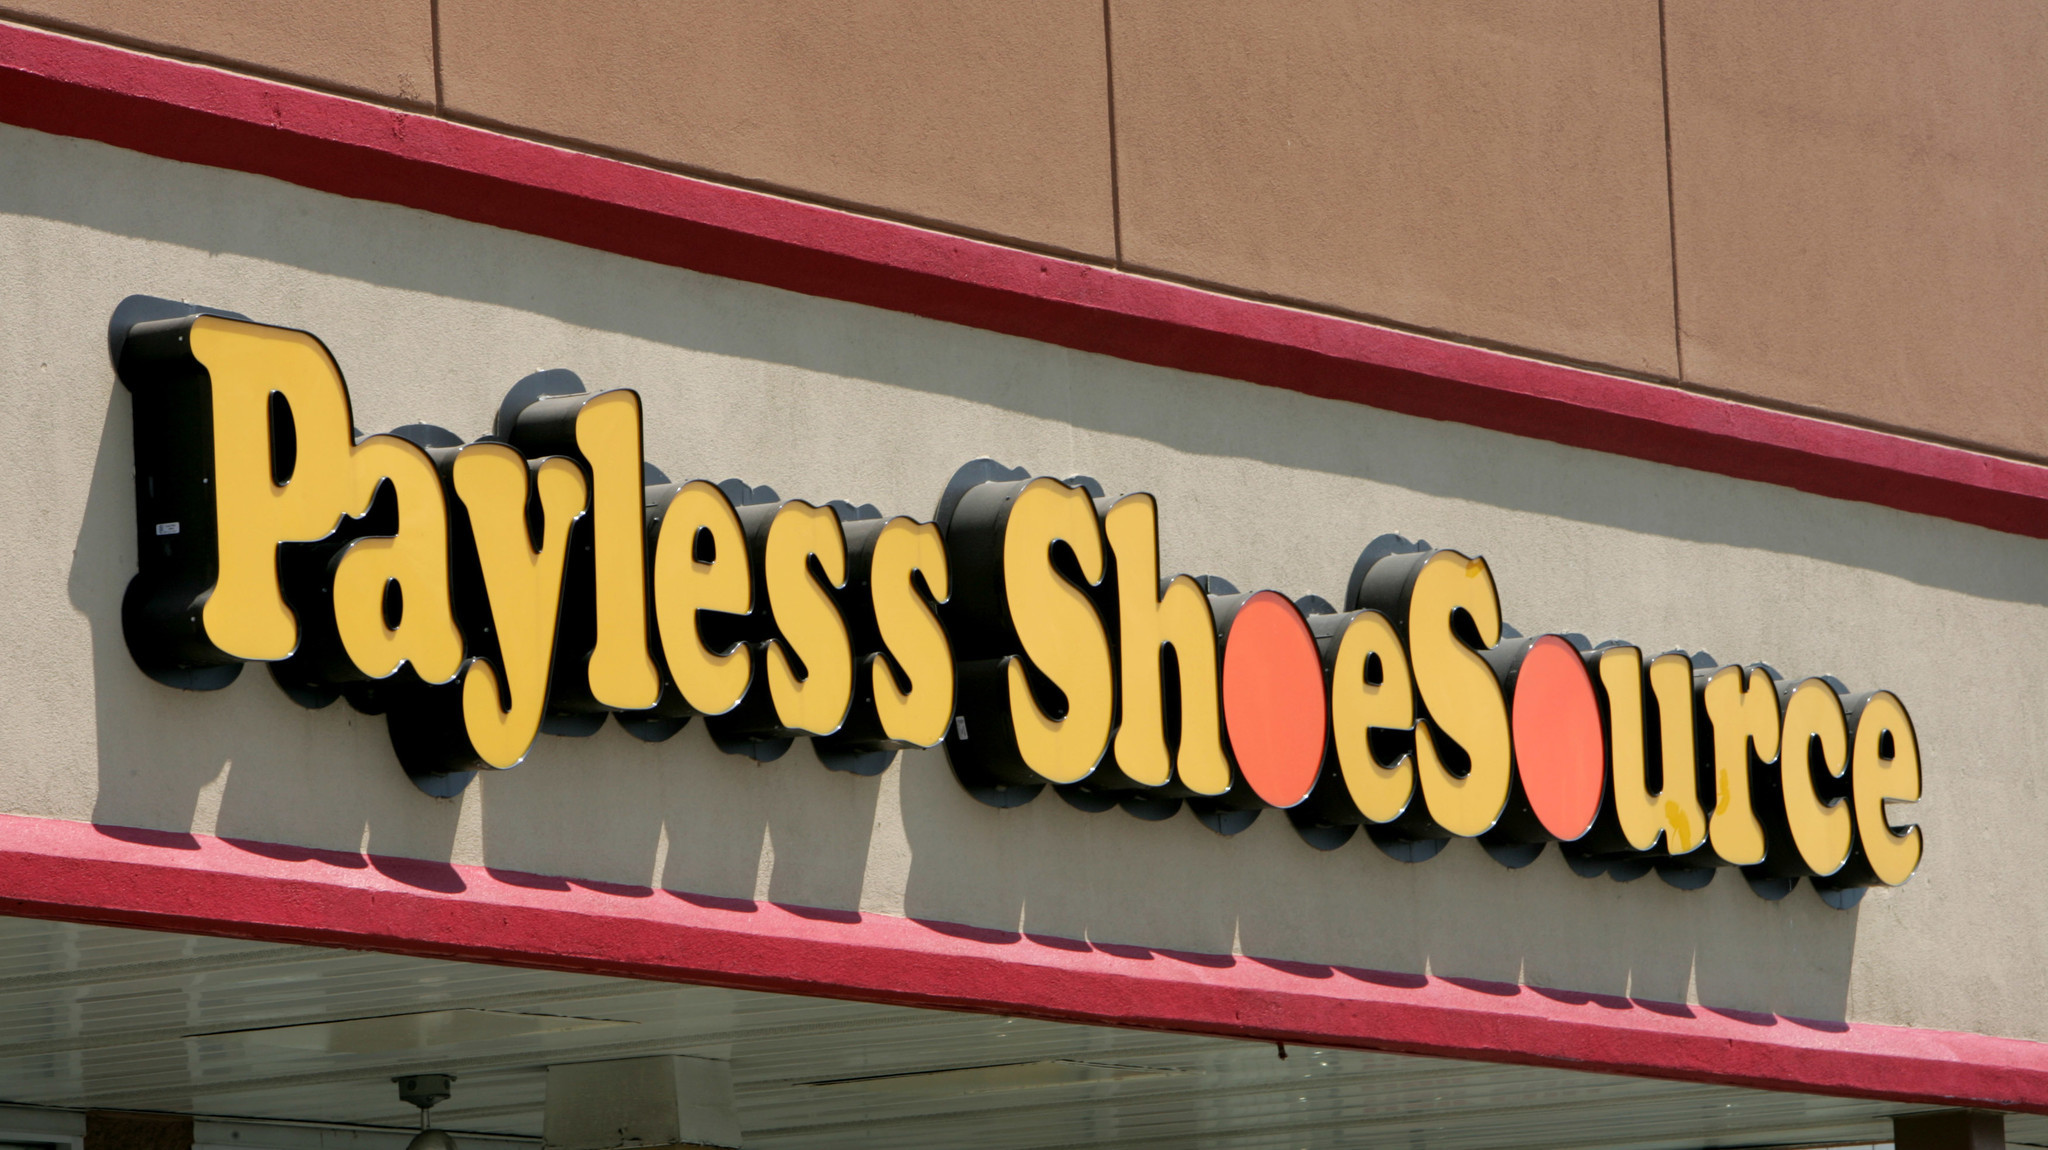 Payless ShoeSource is closing all of its US stores